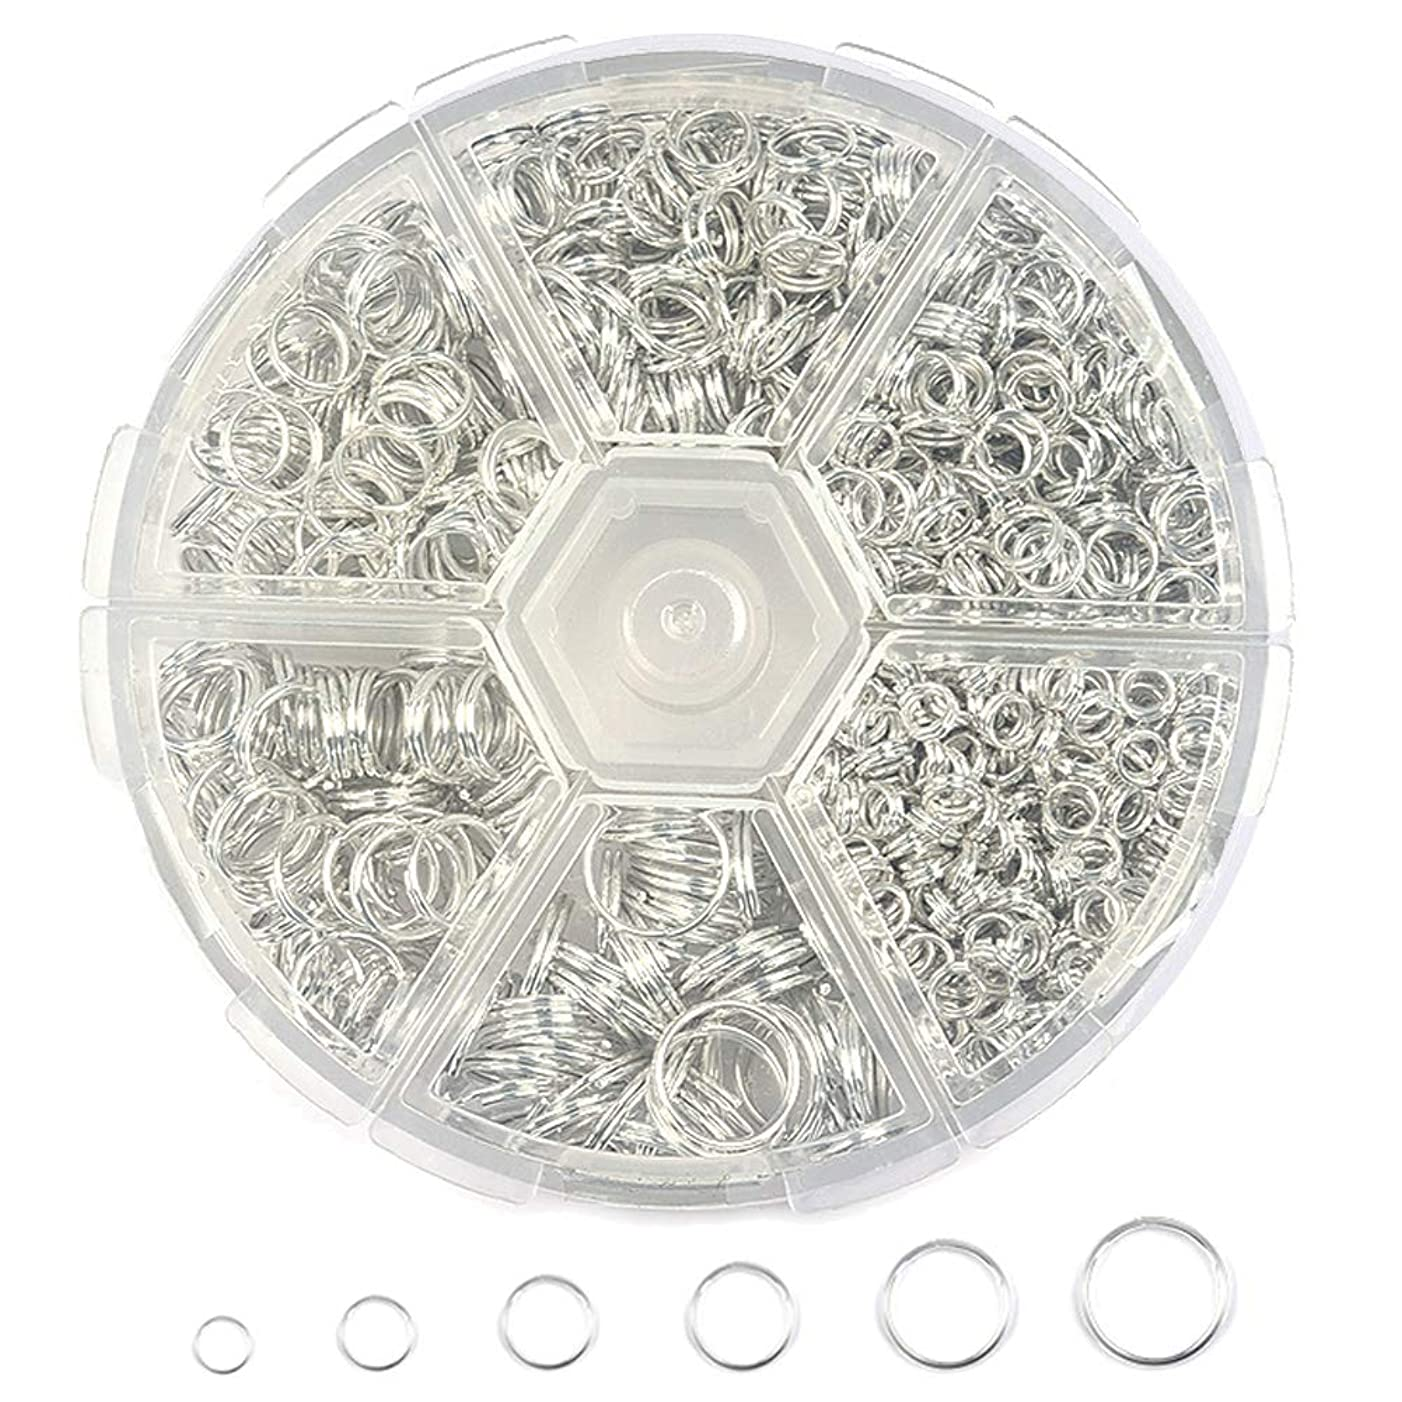 900 Pcs Split Rings Double Loop Jump Ring 4mm to10mm Jewelry Findings for Necklace Bracelet